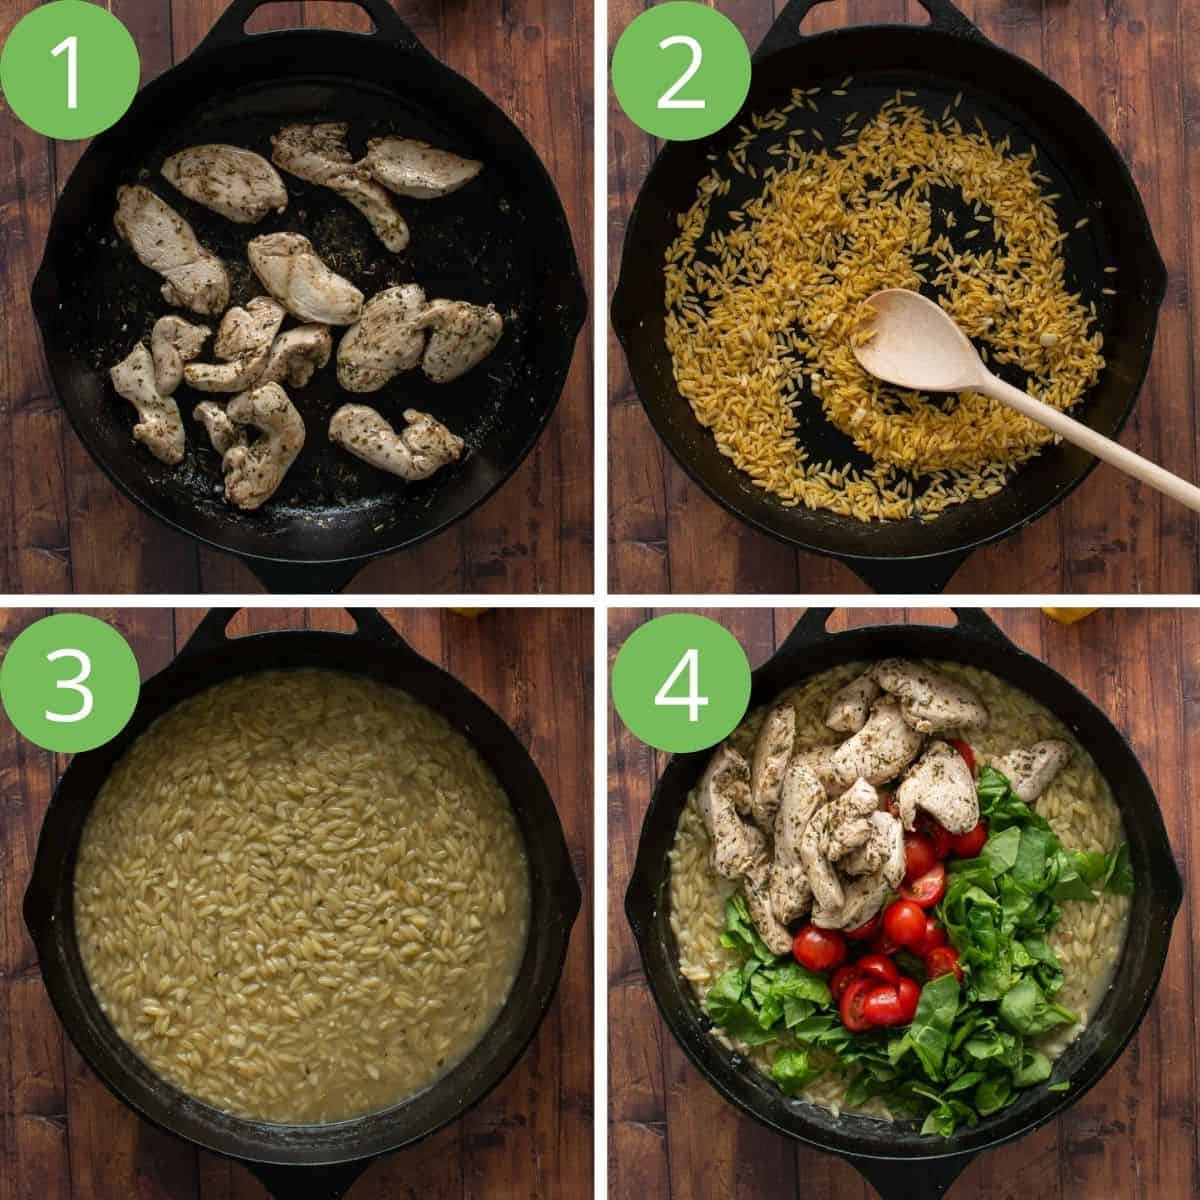 Step by step showing how to make this recipe.